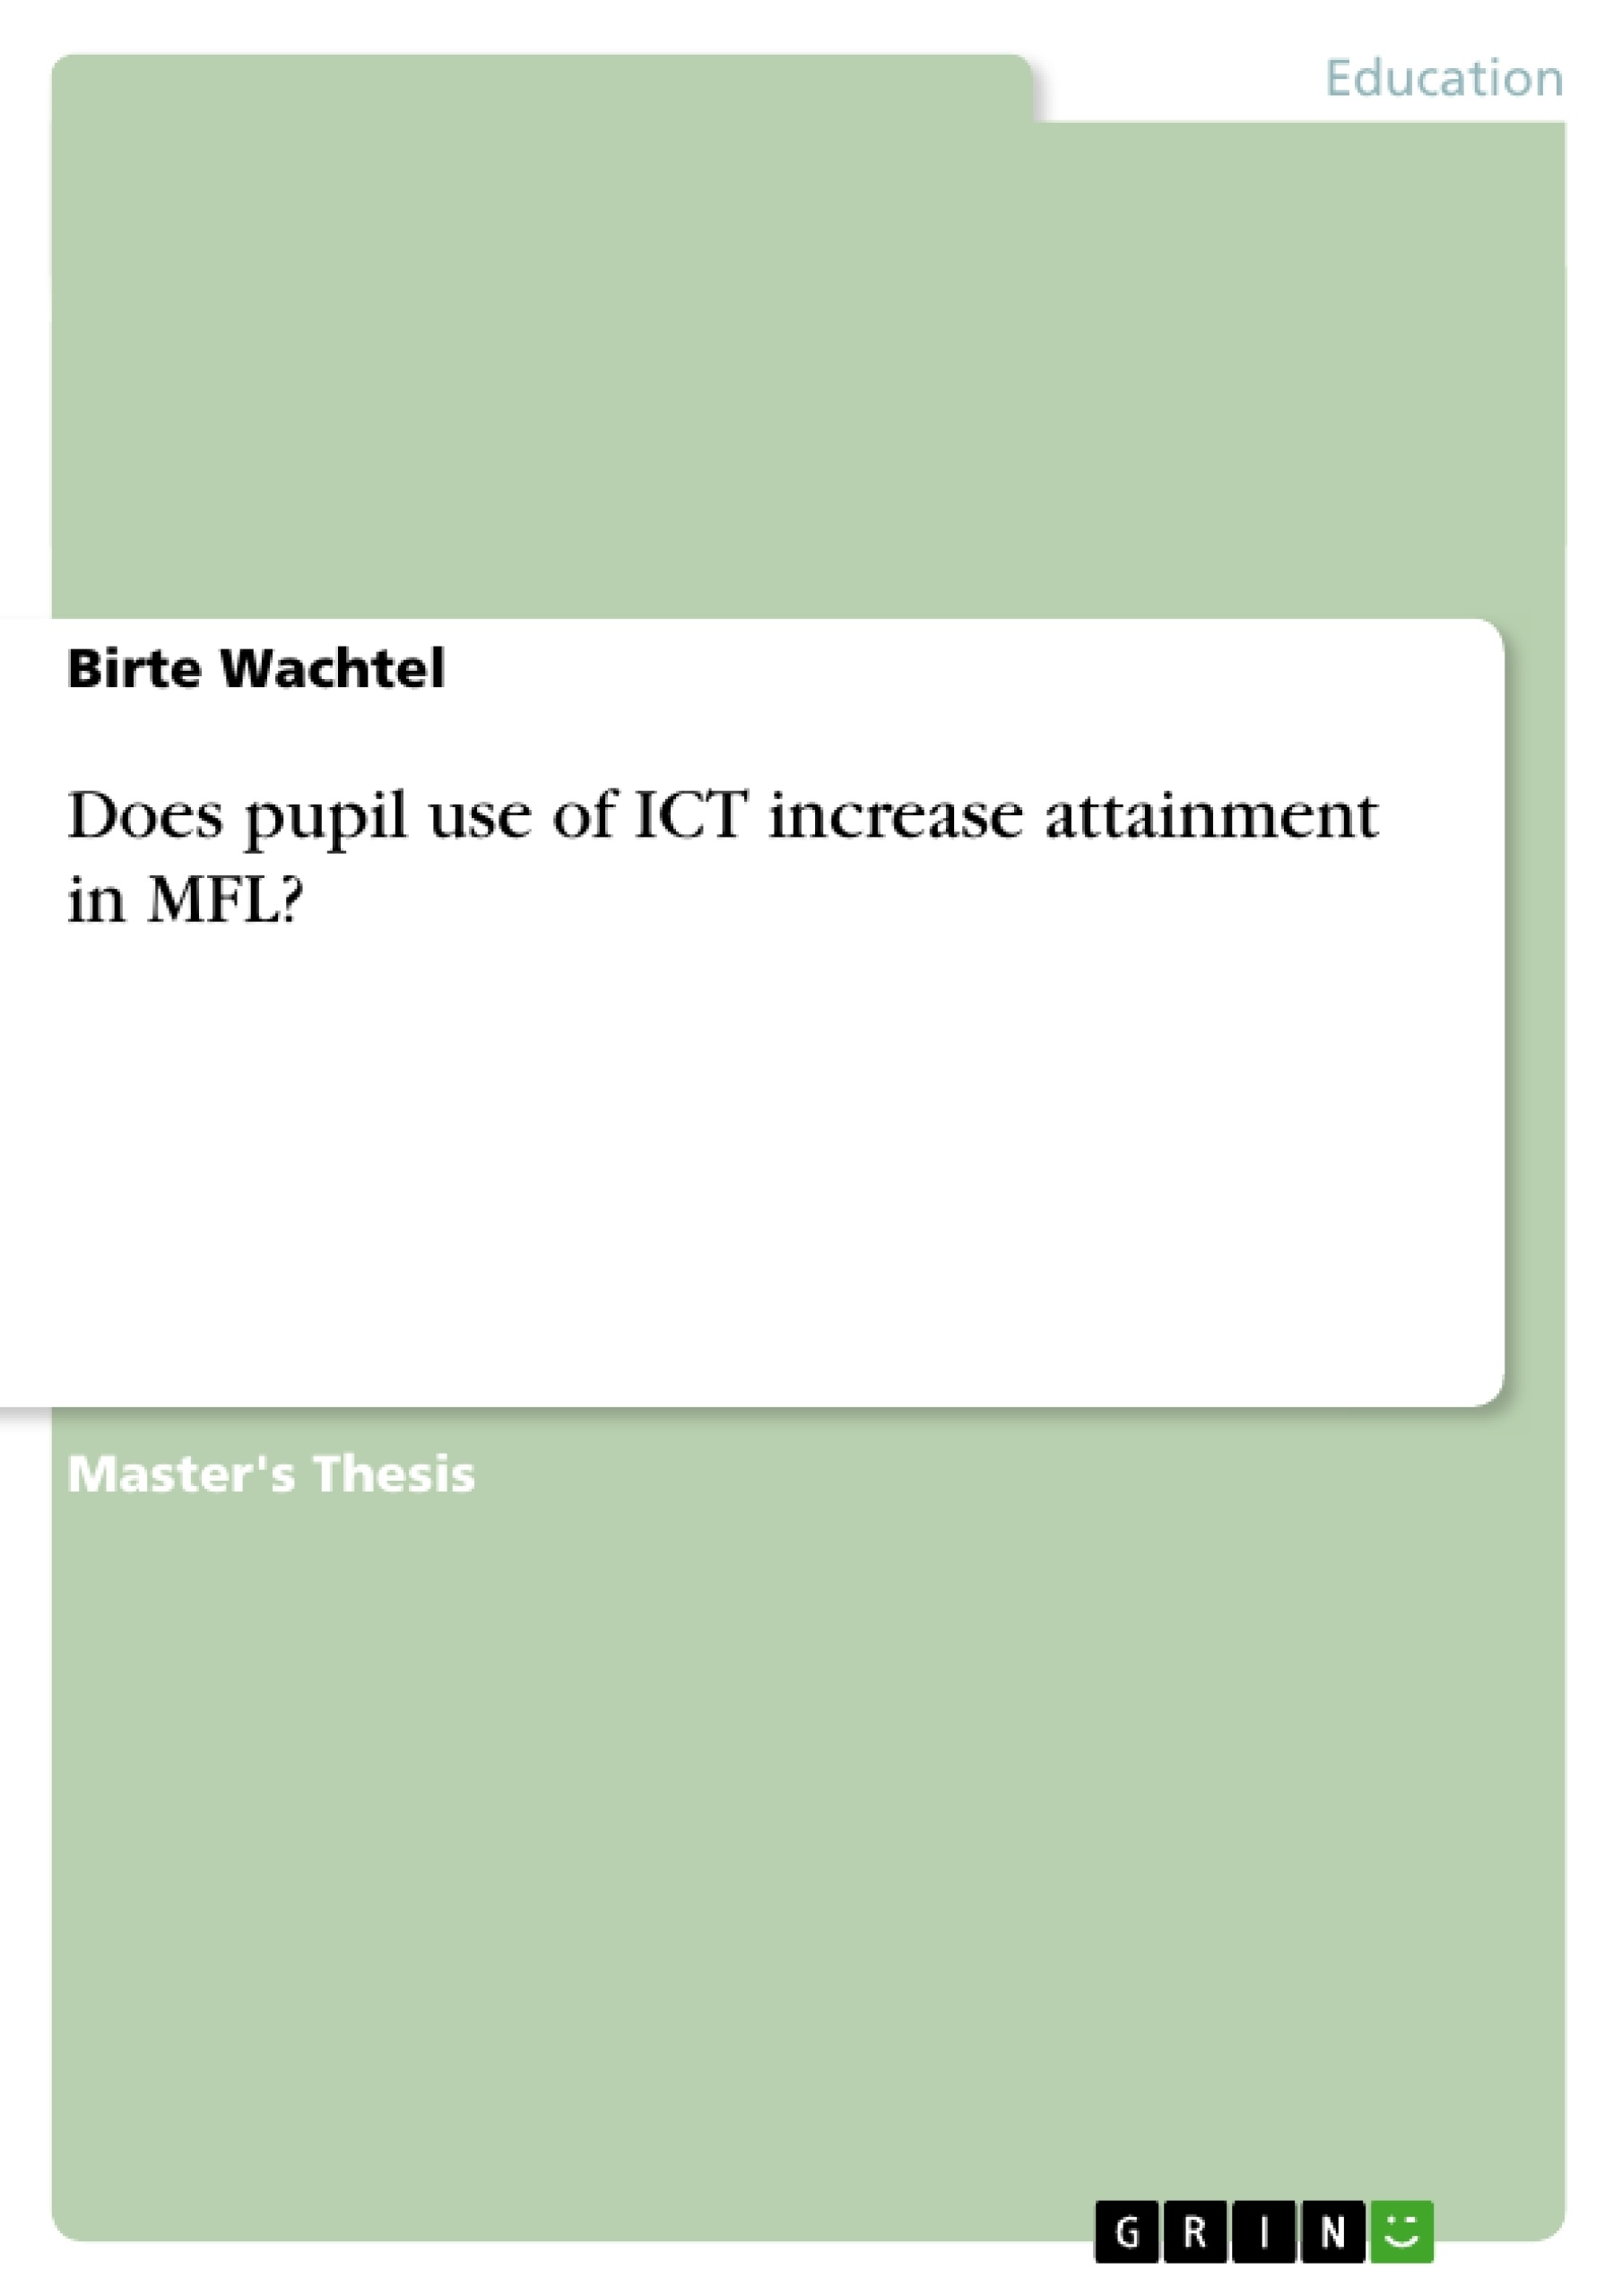 Title: Does pupil use of ICT increase attainment in MFL?